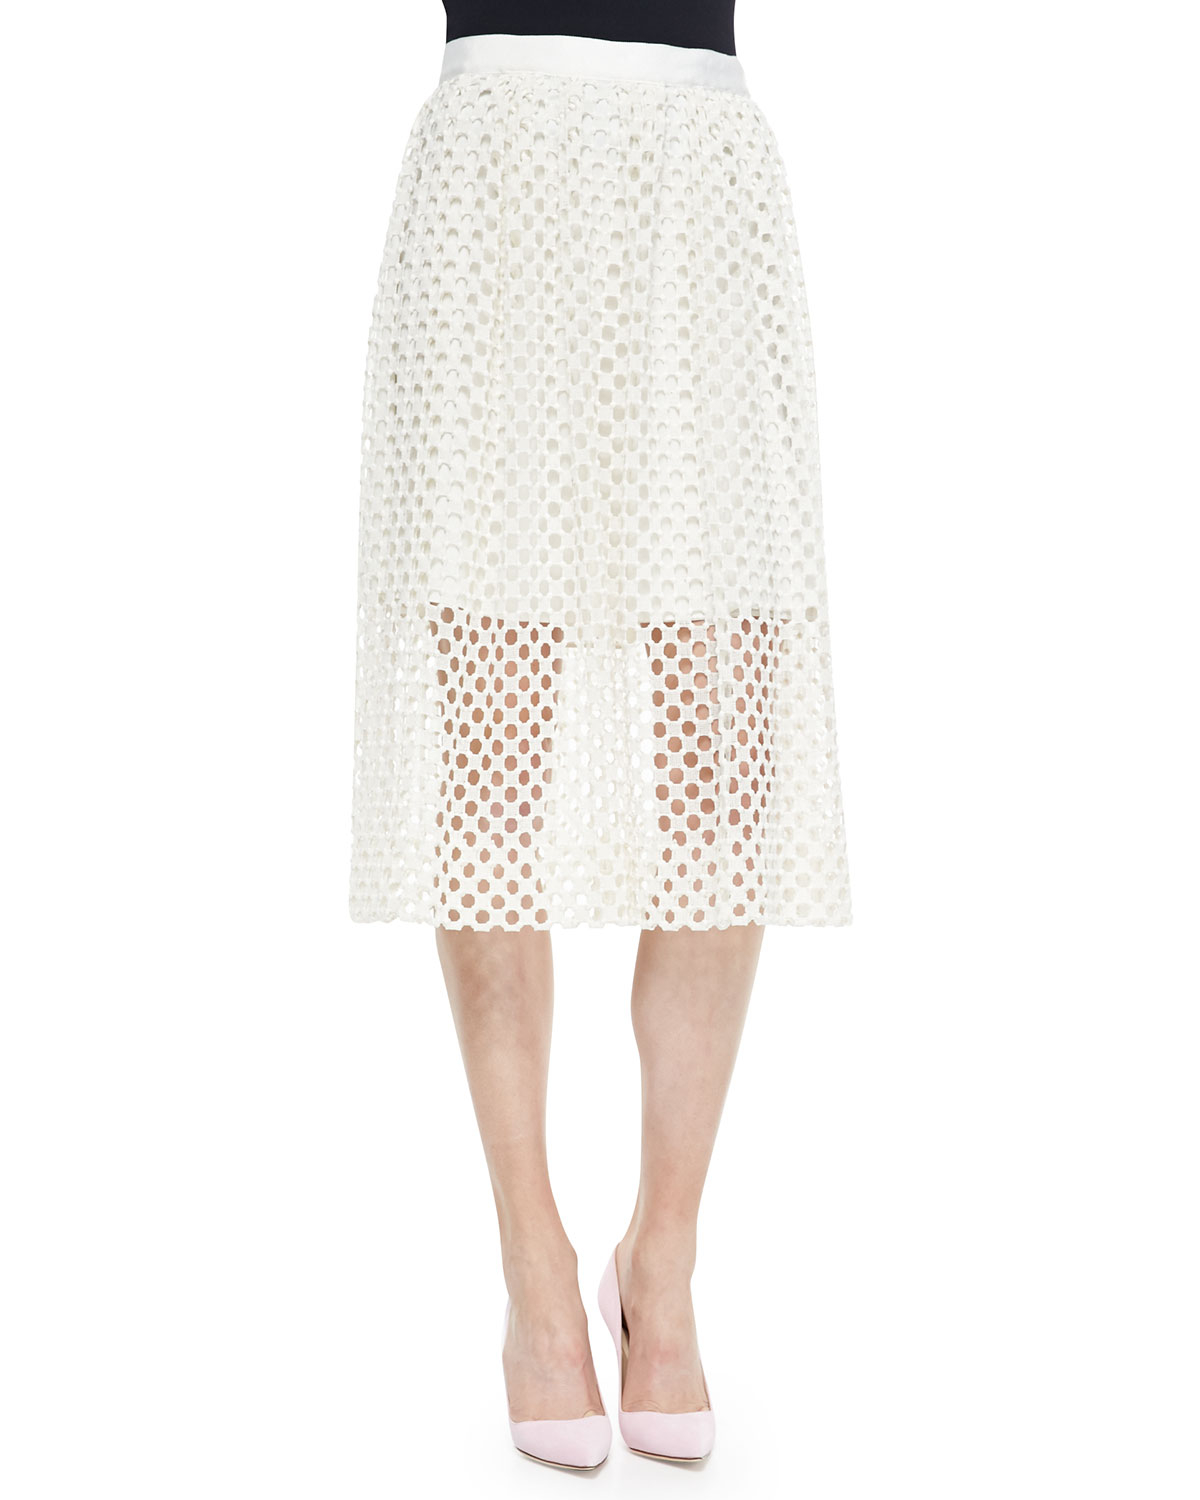 Lela rose Lace Mid Skirt in White | Lyst